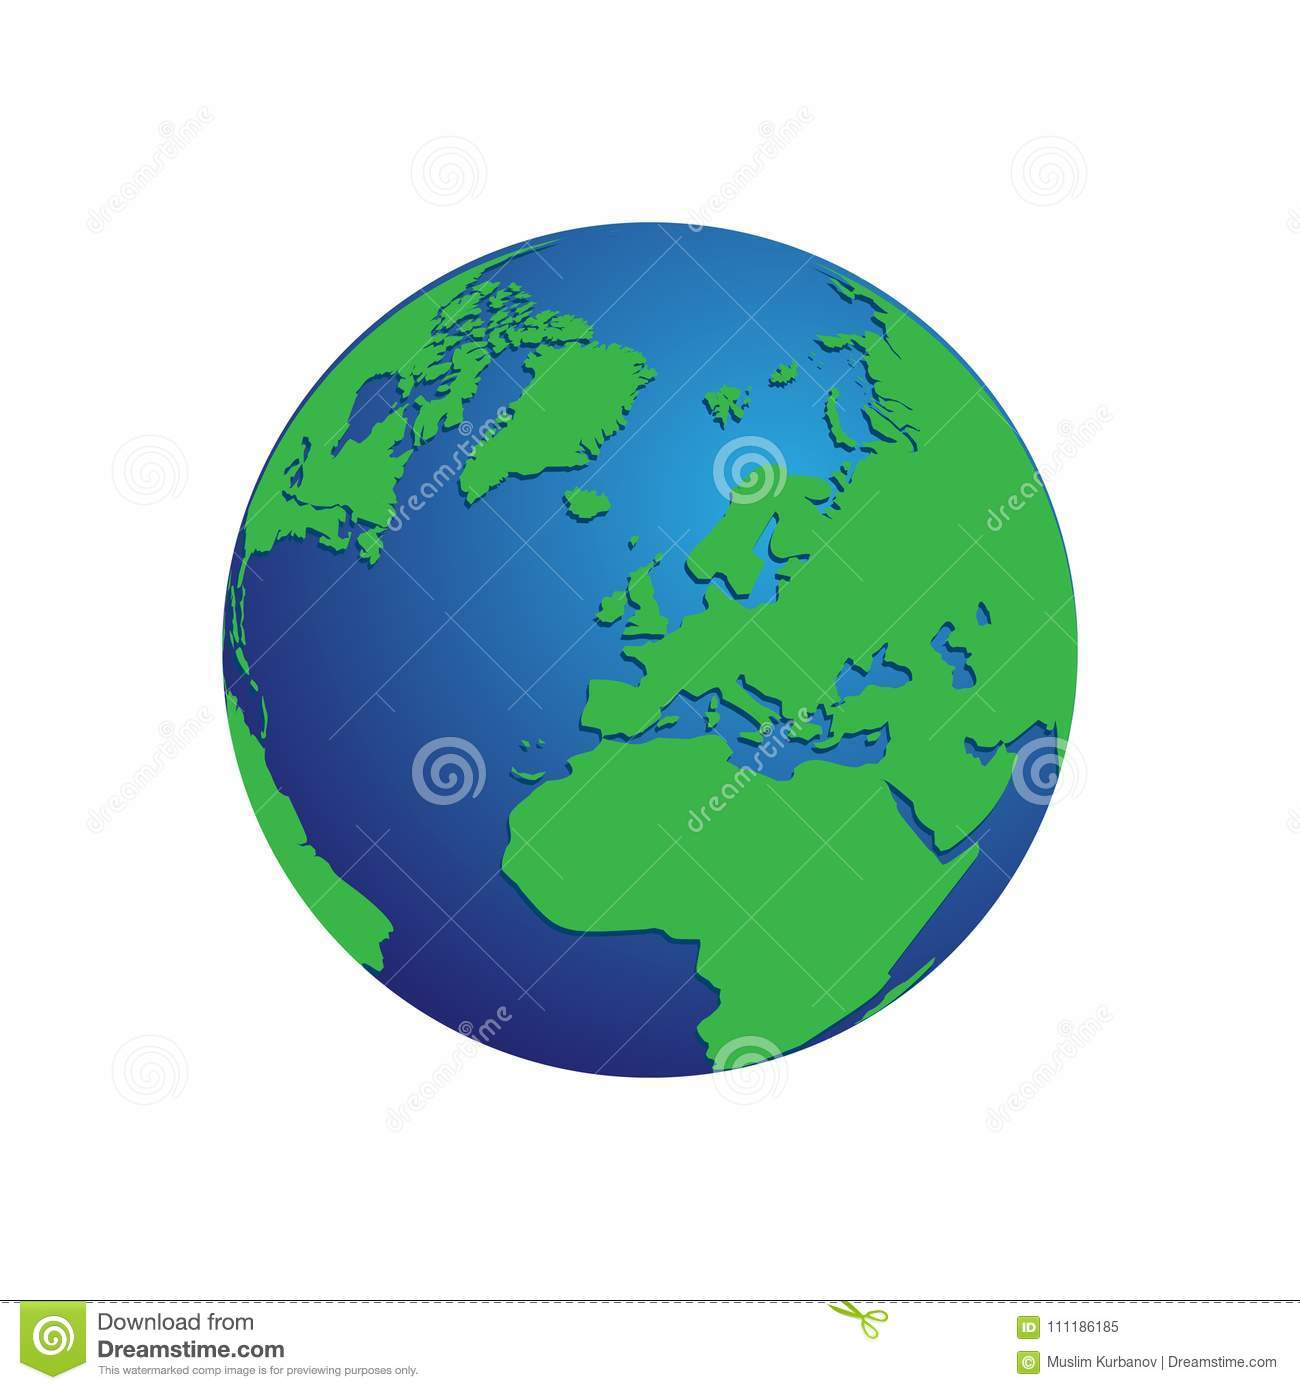 Realistic blue and green 3d world map globe isolated background realistic blue and green 3d world map globe isolated background vector eps 10 gumiabroncs Gallery